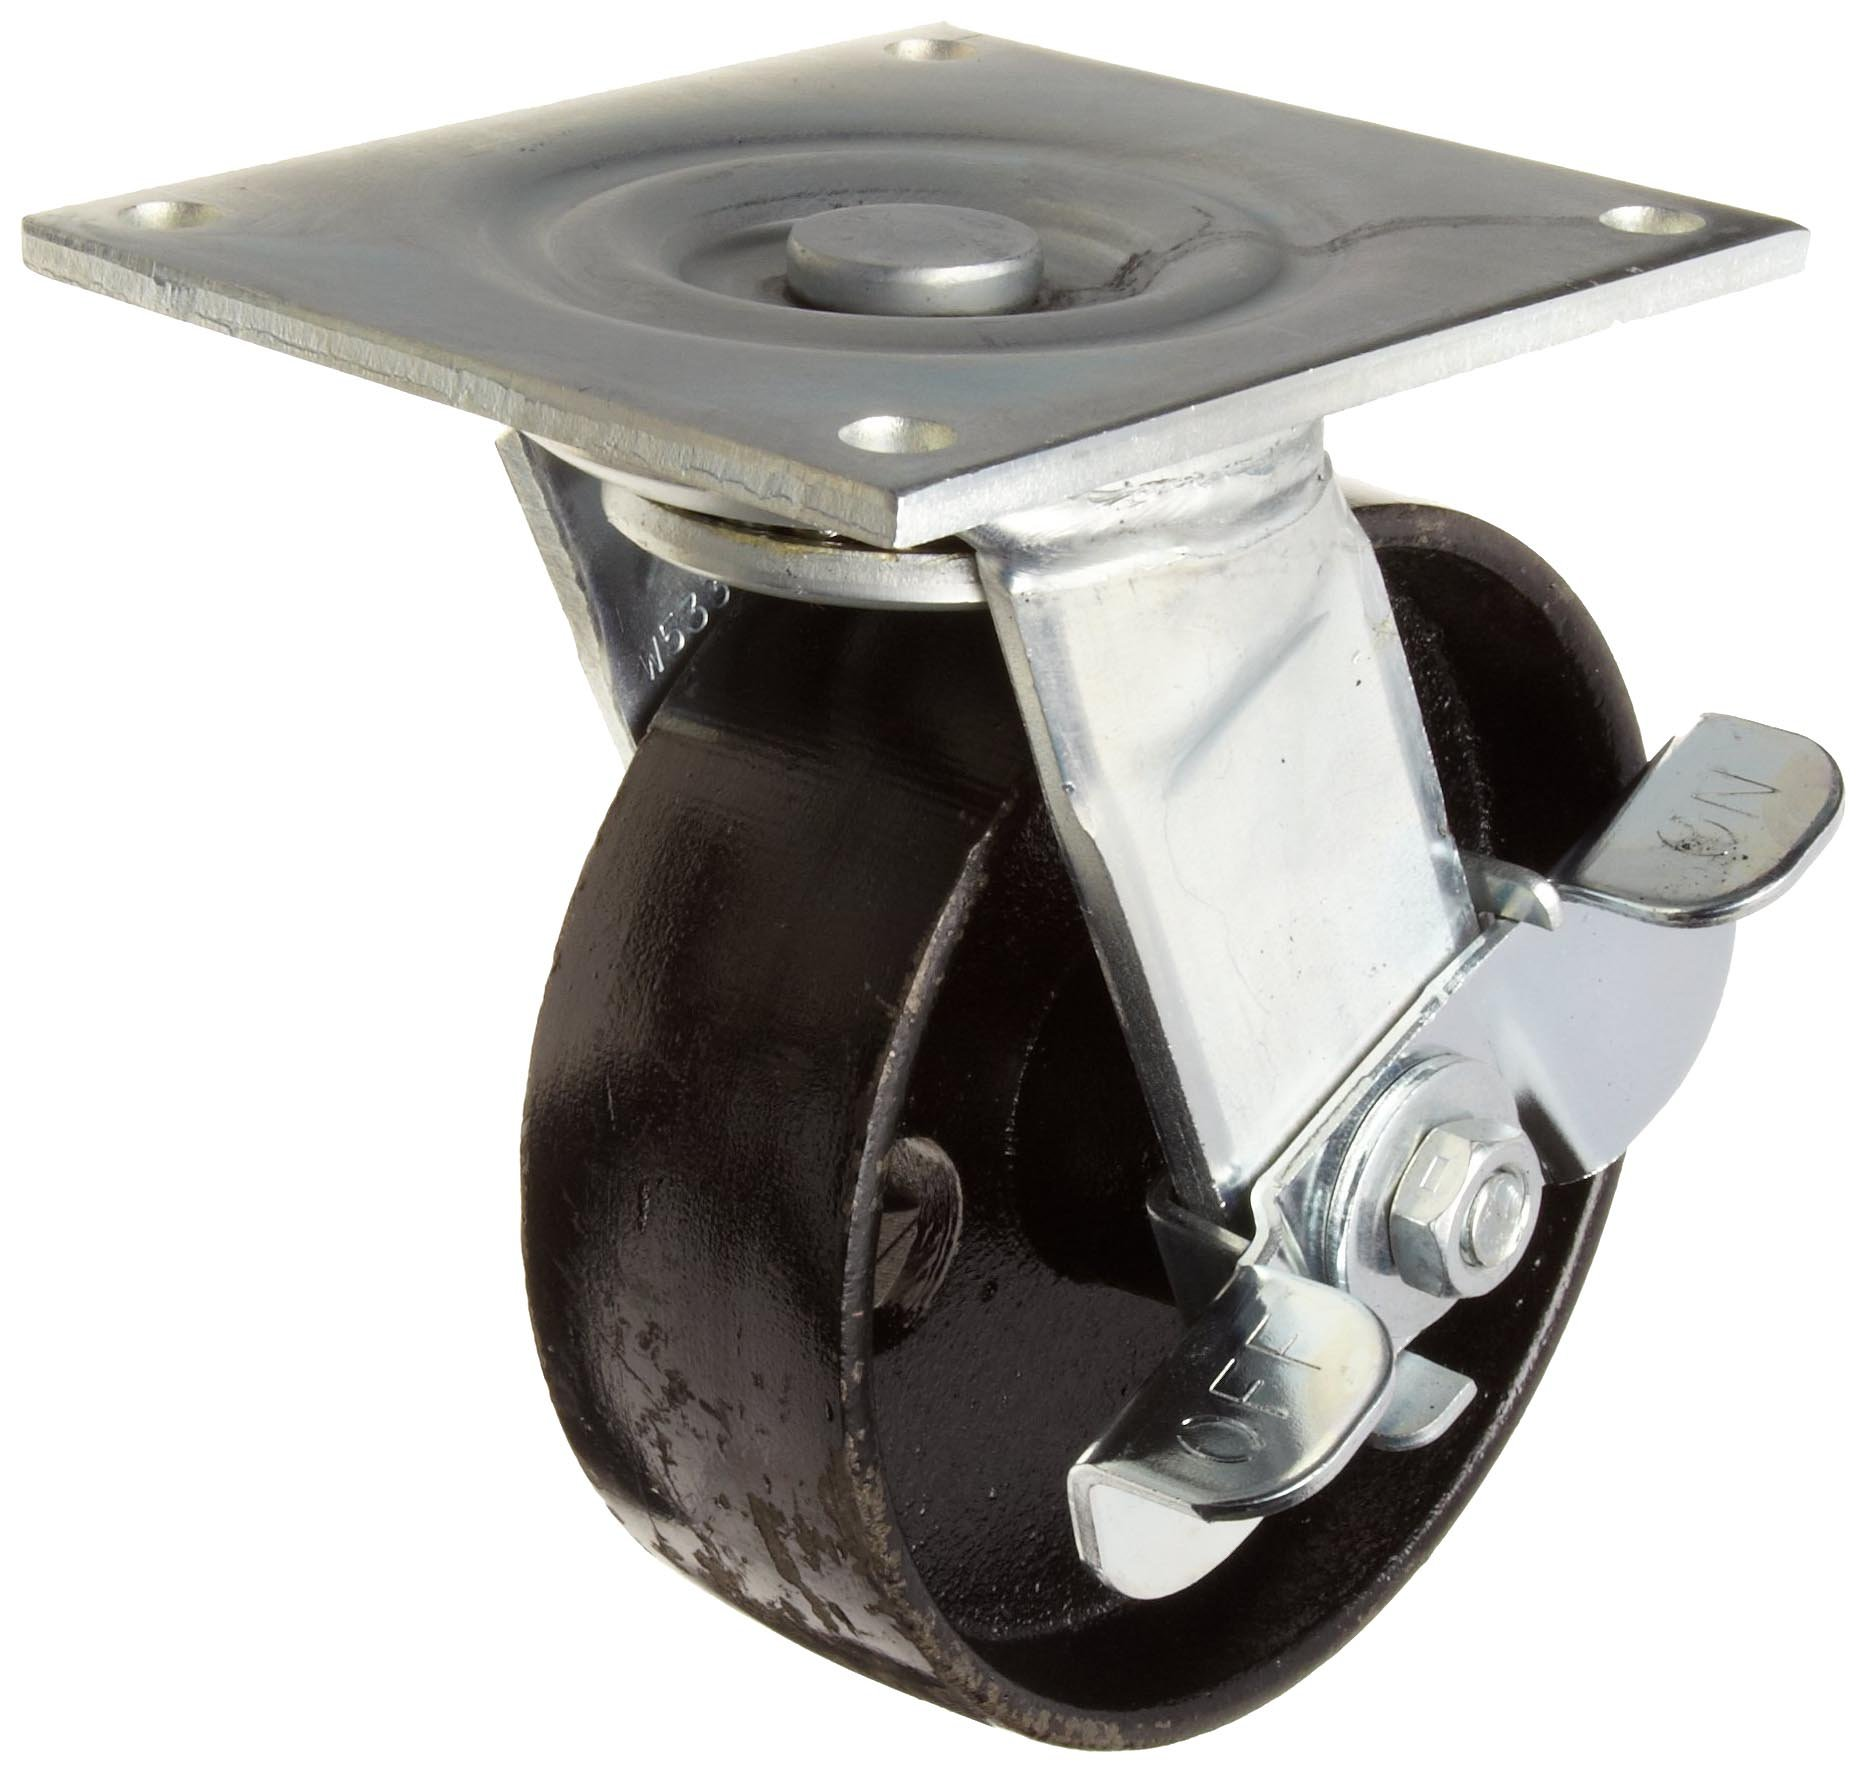 E.R. Wagner Plate Caster, Swivel with Pinch Brake, Polyurethane on Aluminum Wheel, Roller Bearing, 1200 lbs Capacity, 6'' Wheel Dia, 2'' Wheel Width, 7-1/2'' Mount Height, 4-5/8'' Plate Length, 4'' Plate Width